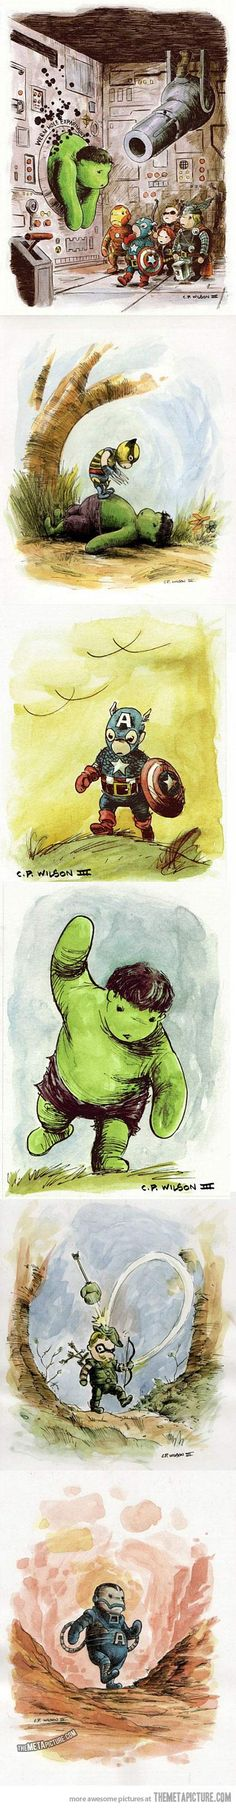 The Avengers ♥ Winnie the pooh style